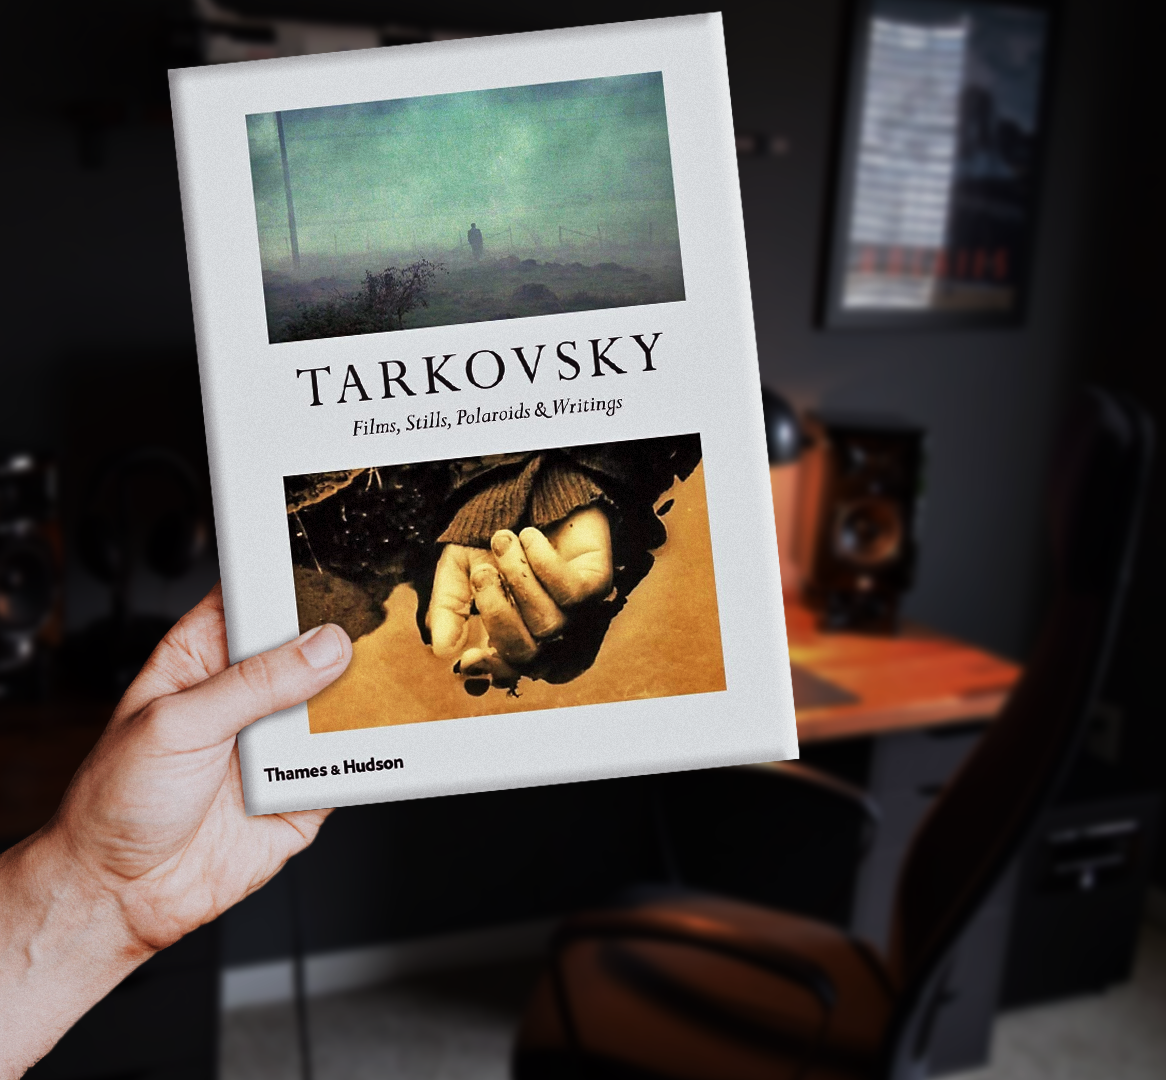 andrei tarkovsky book soviet cinema filmmaking photography coffee table book cinematography book